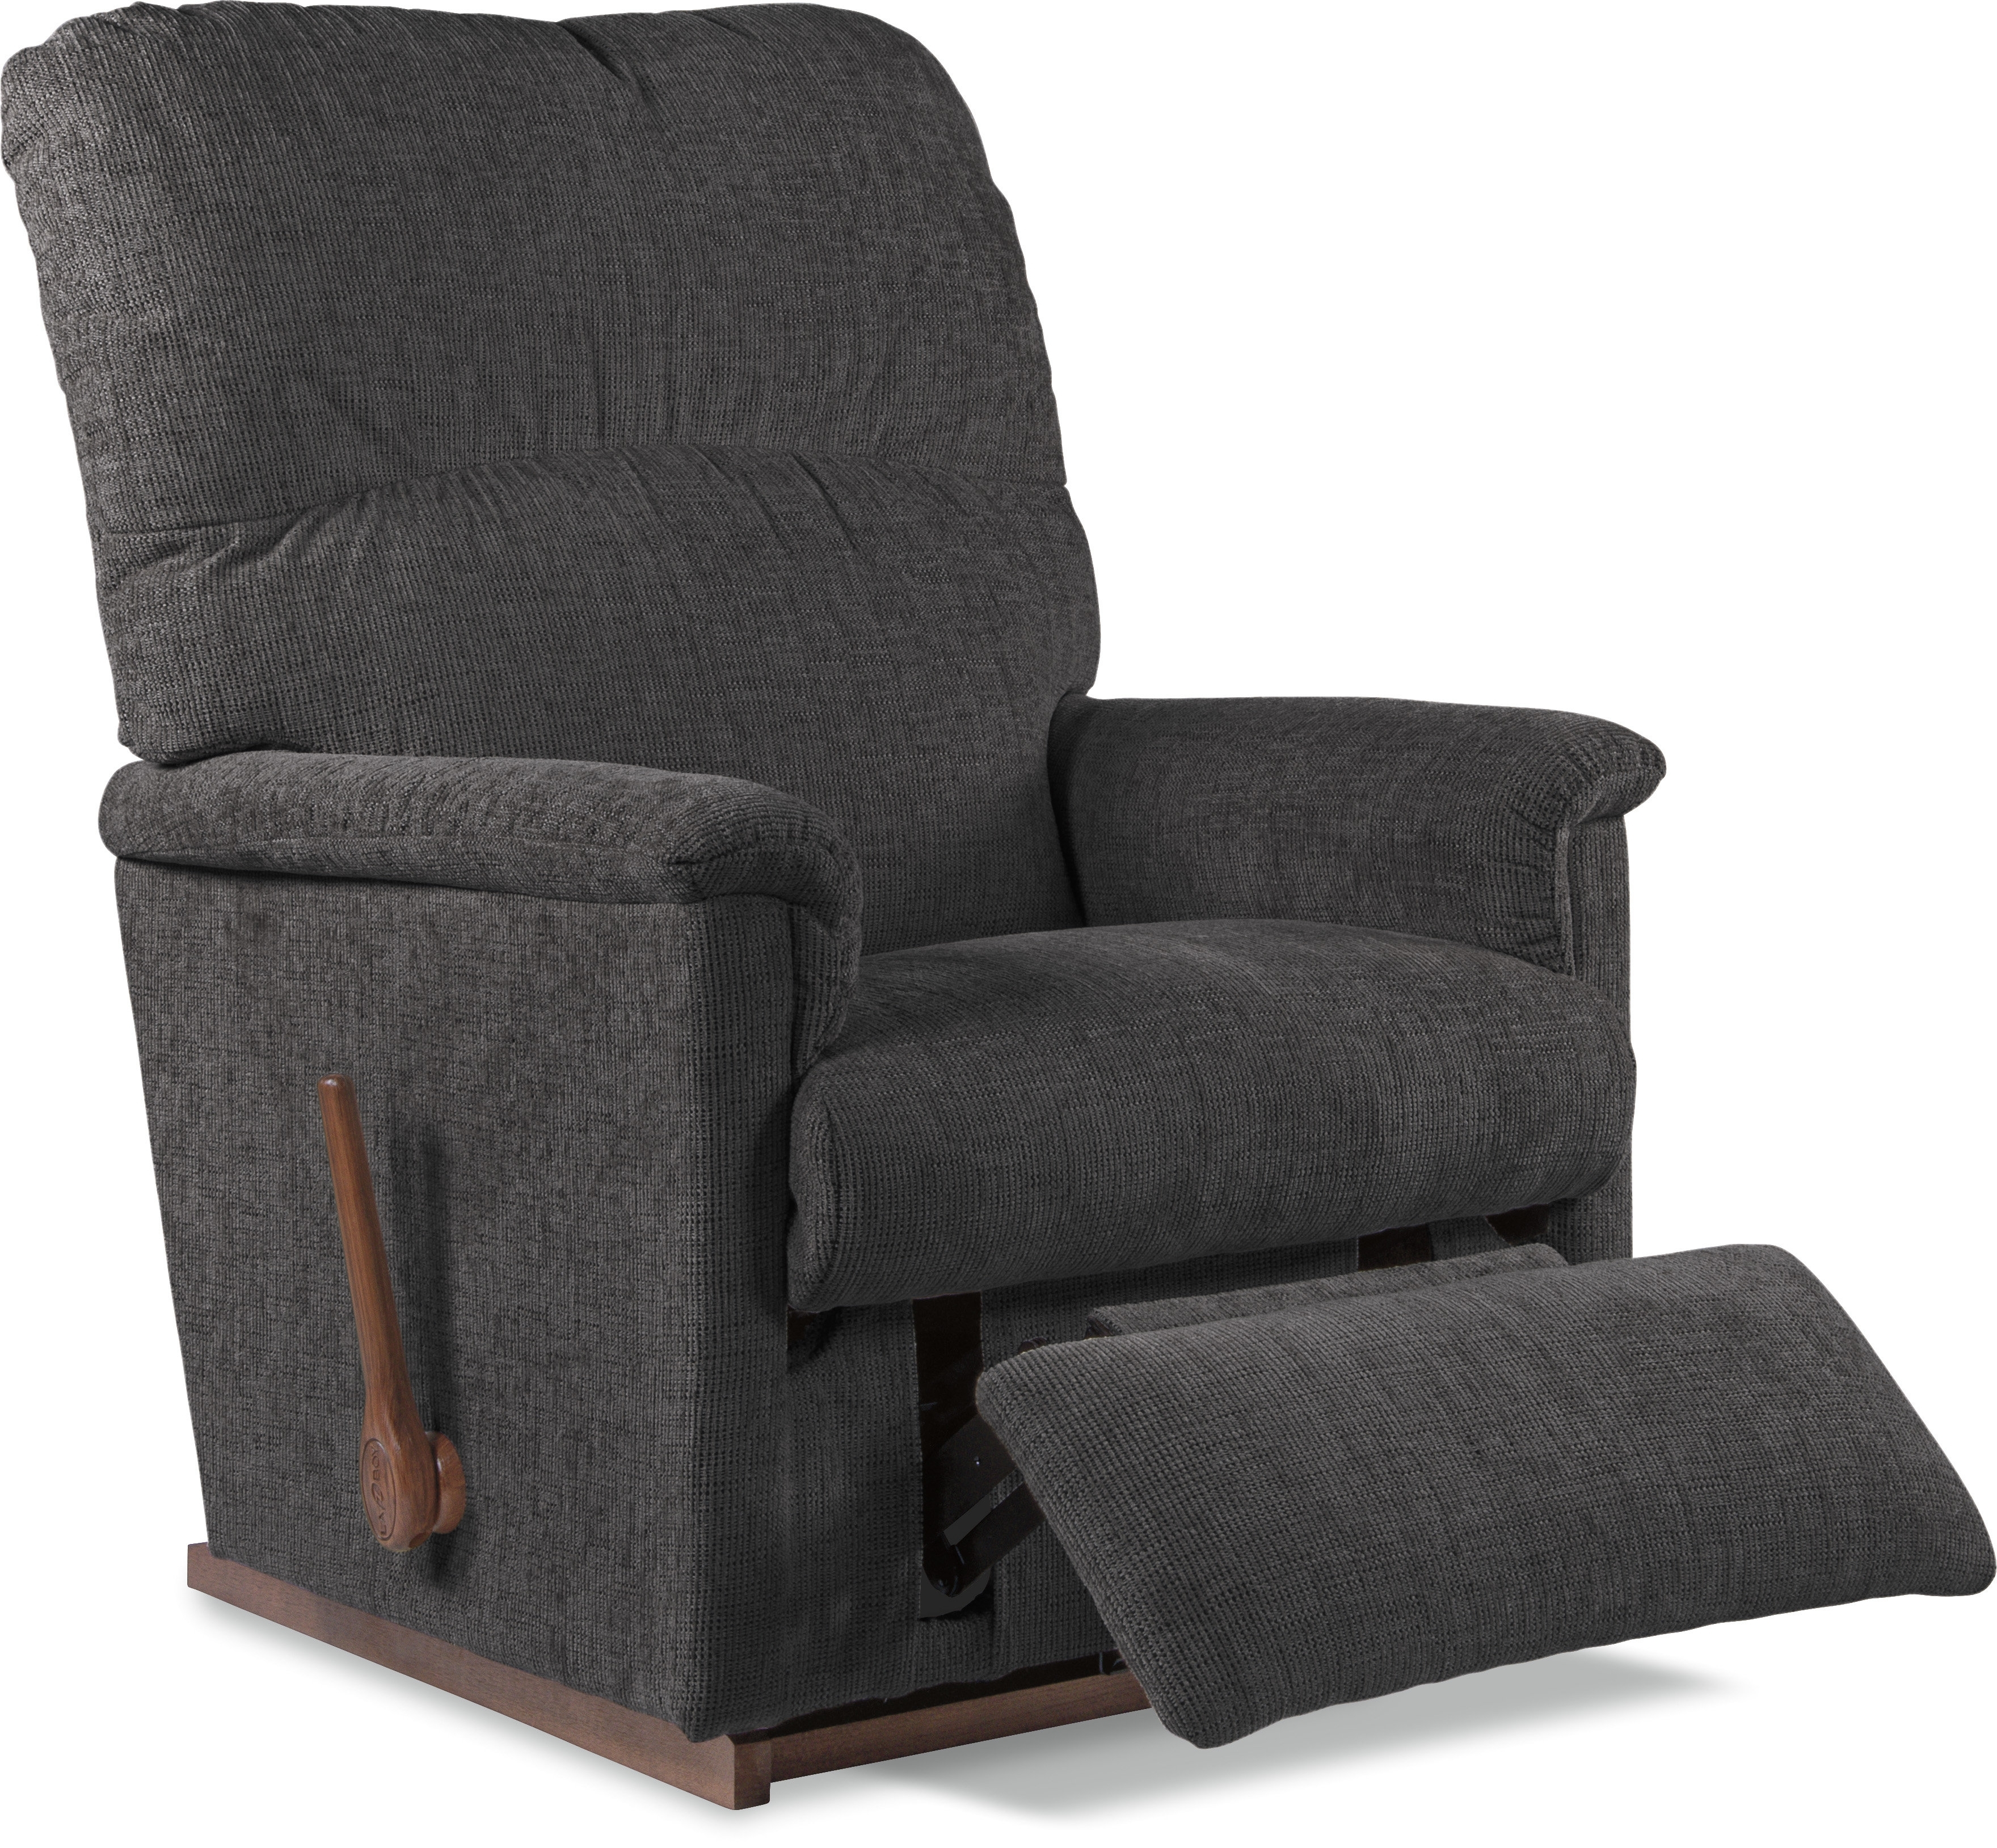 La Z Boy | Wayfair With Marcus Chocolate 6 Piece Sectionals With Power Headrest And Usb (Image 9 of 25)